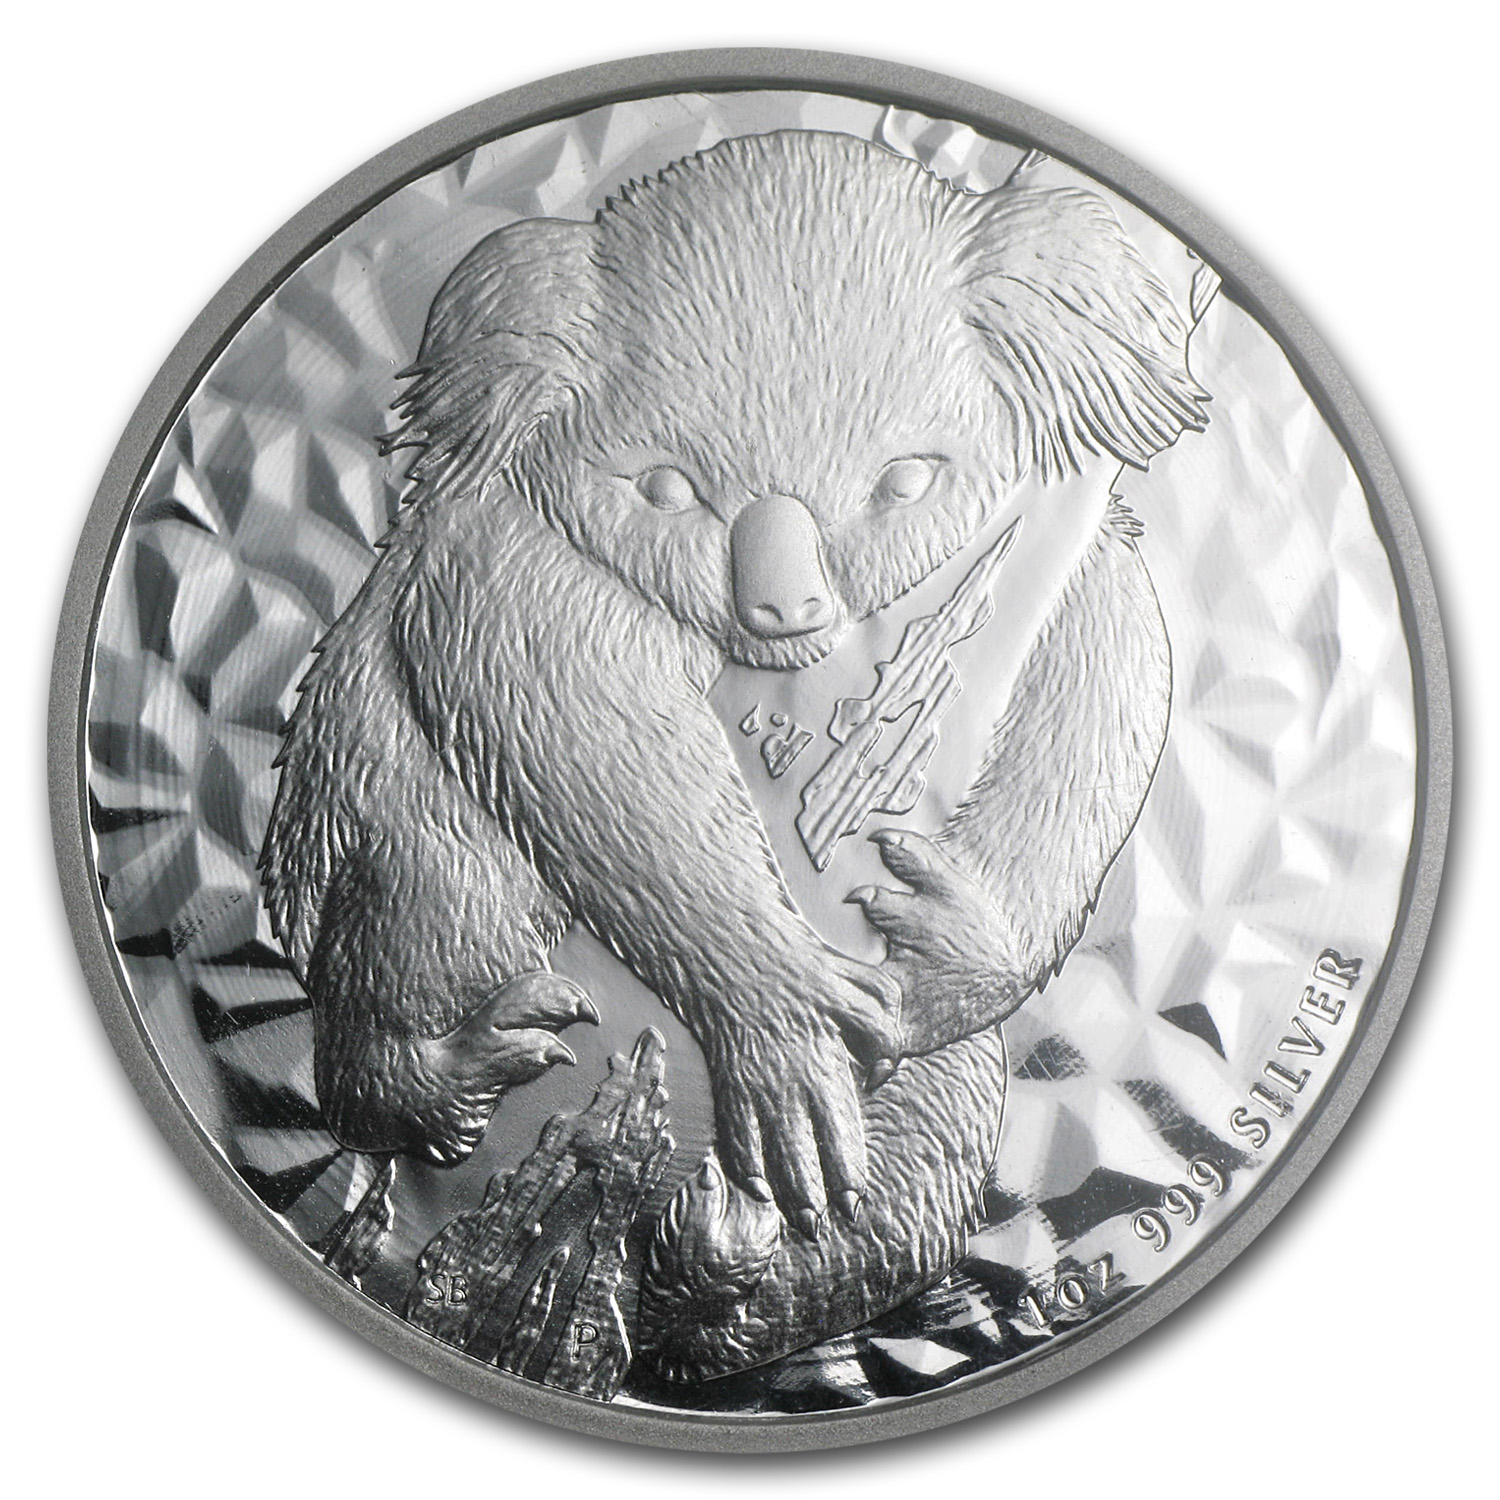 2007 1 oz Silver Australian Koala MS-69 NGC (First Year of Issue)